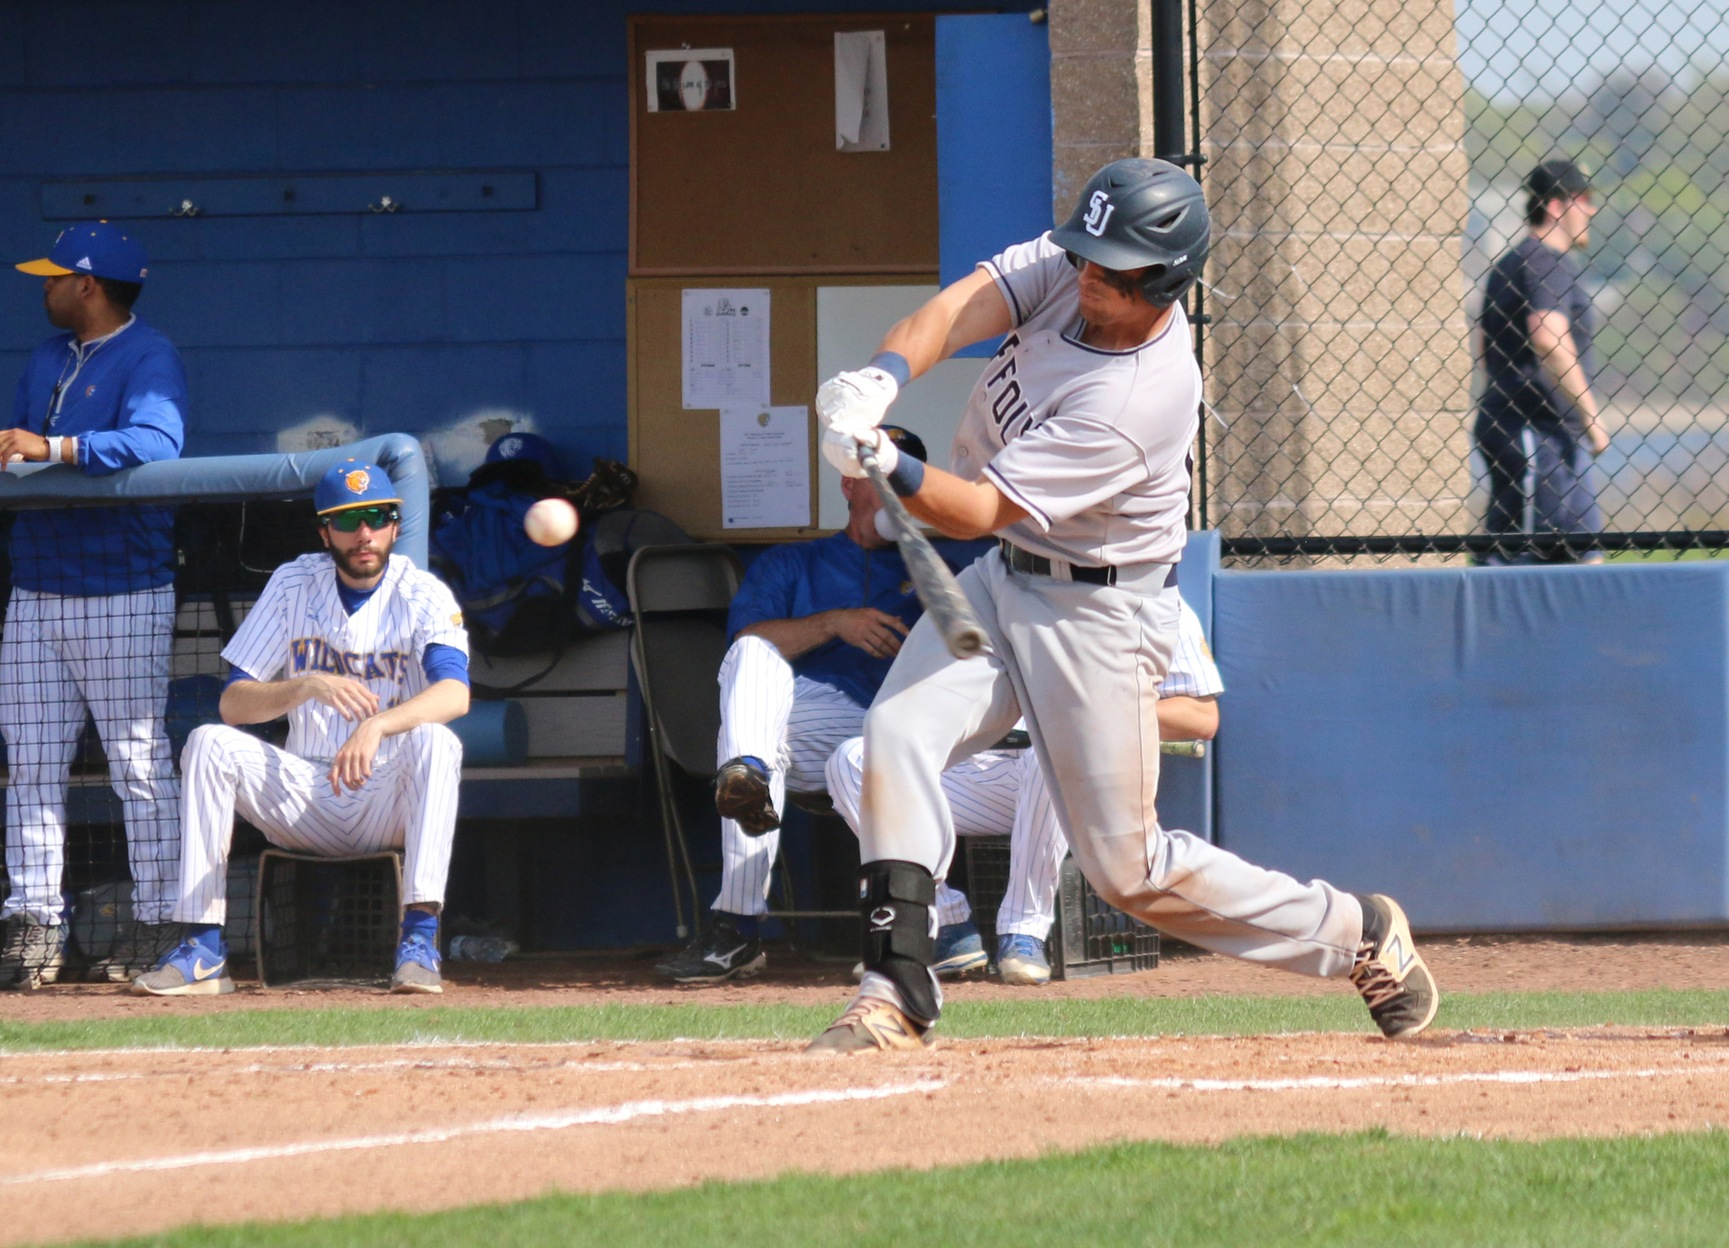 Tests at Bates, Worcester State Prepare Baseball for NCAAs